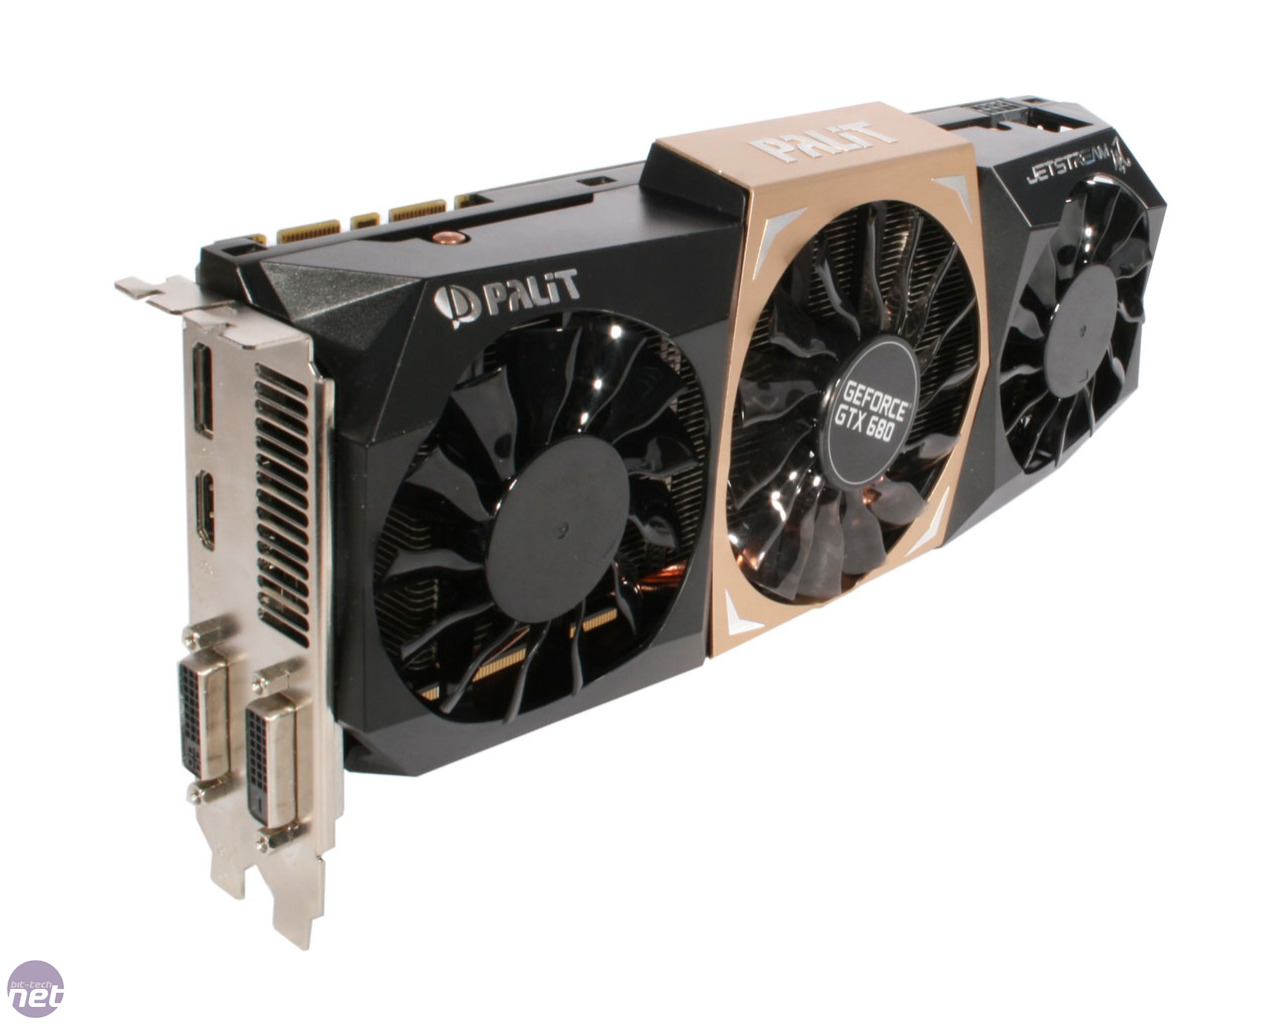 Palit GeForce GTX 680 2GB JetStream review | bit-tech net